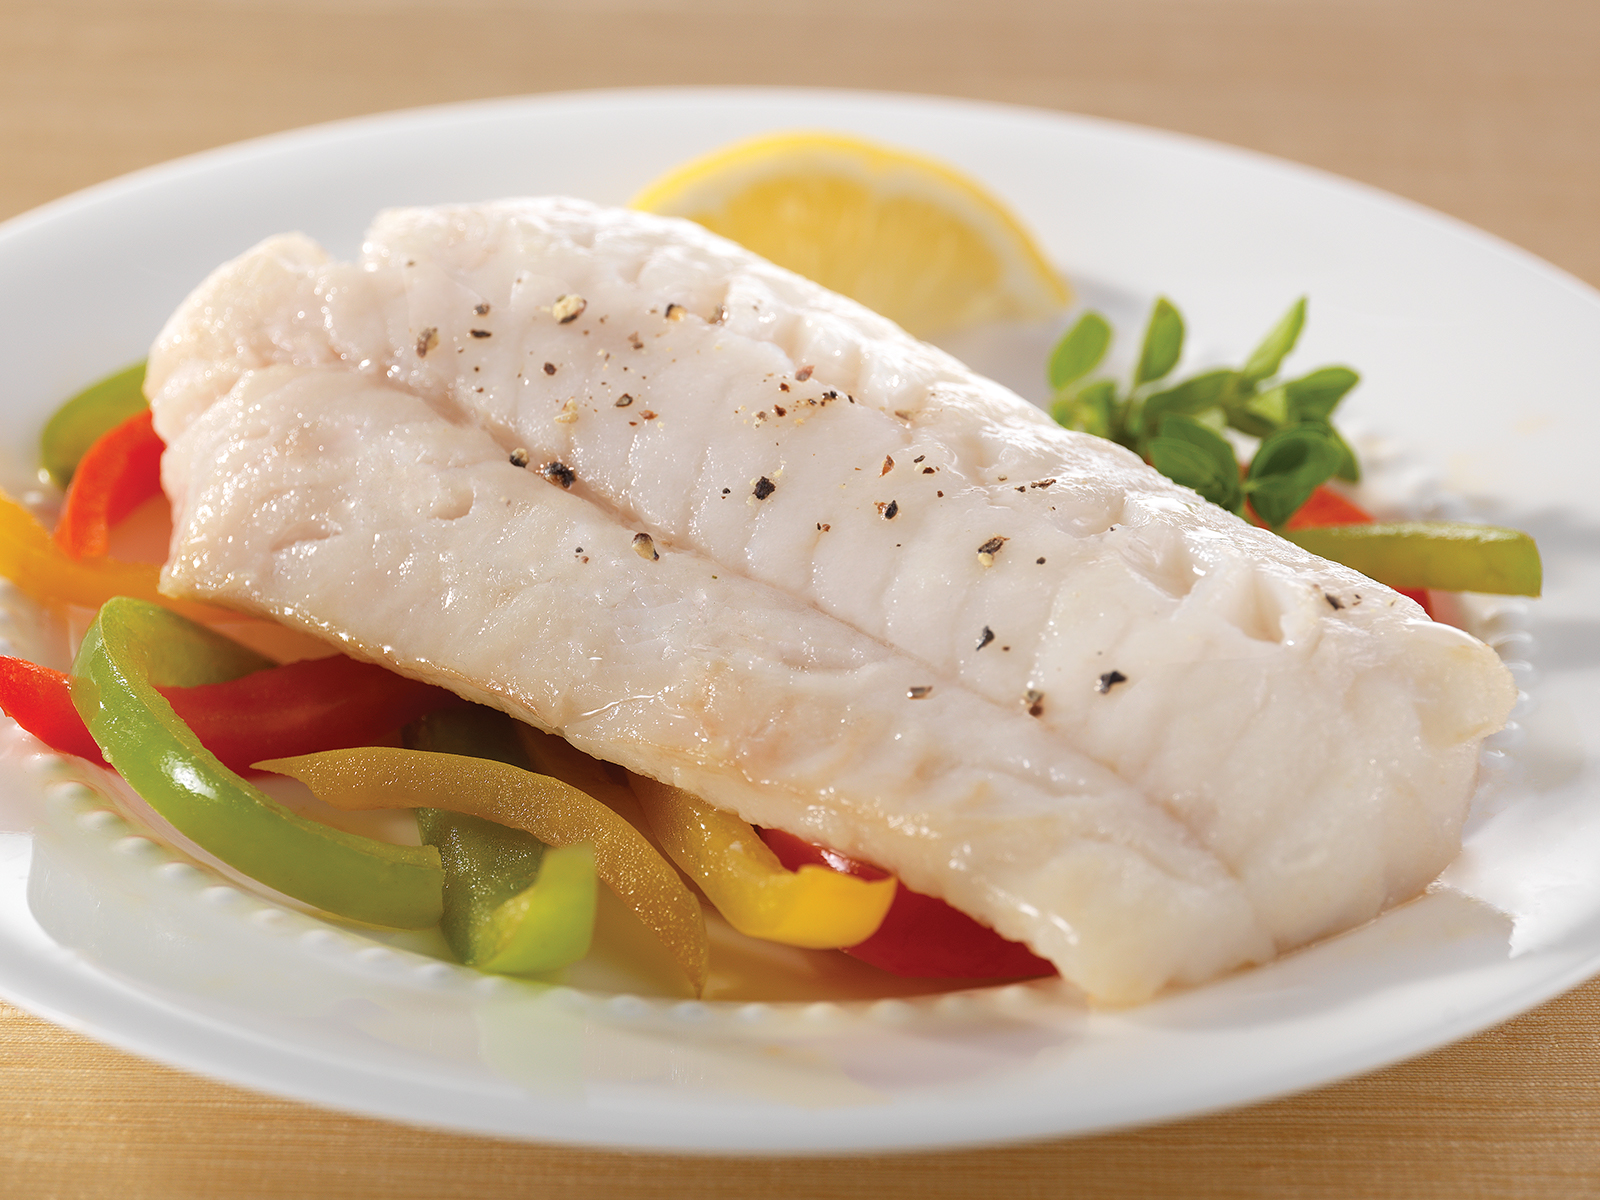 Cod Loin Portions 8 oz IQF, Skinless, Boneless (1/10 lb) 410379